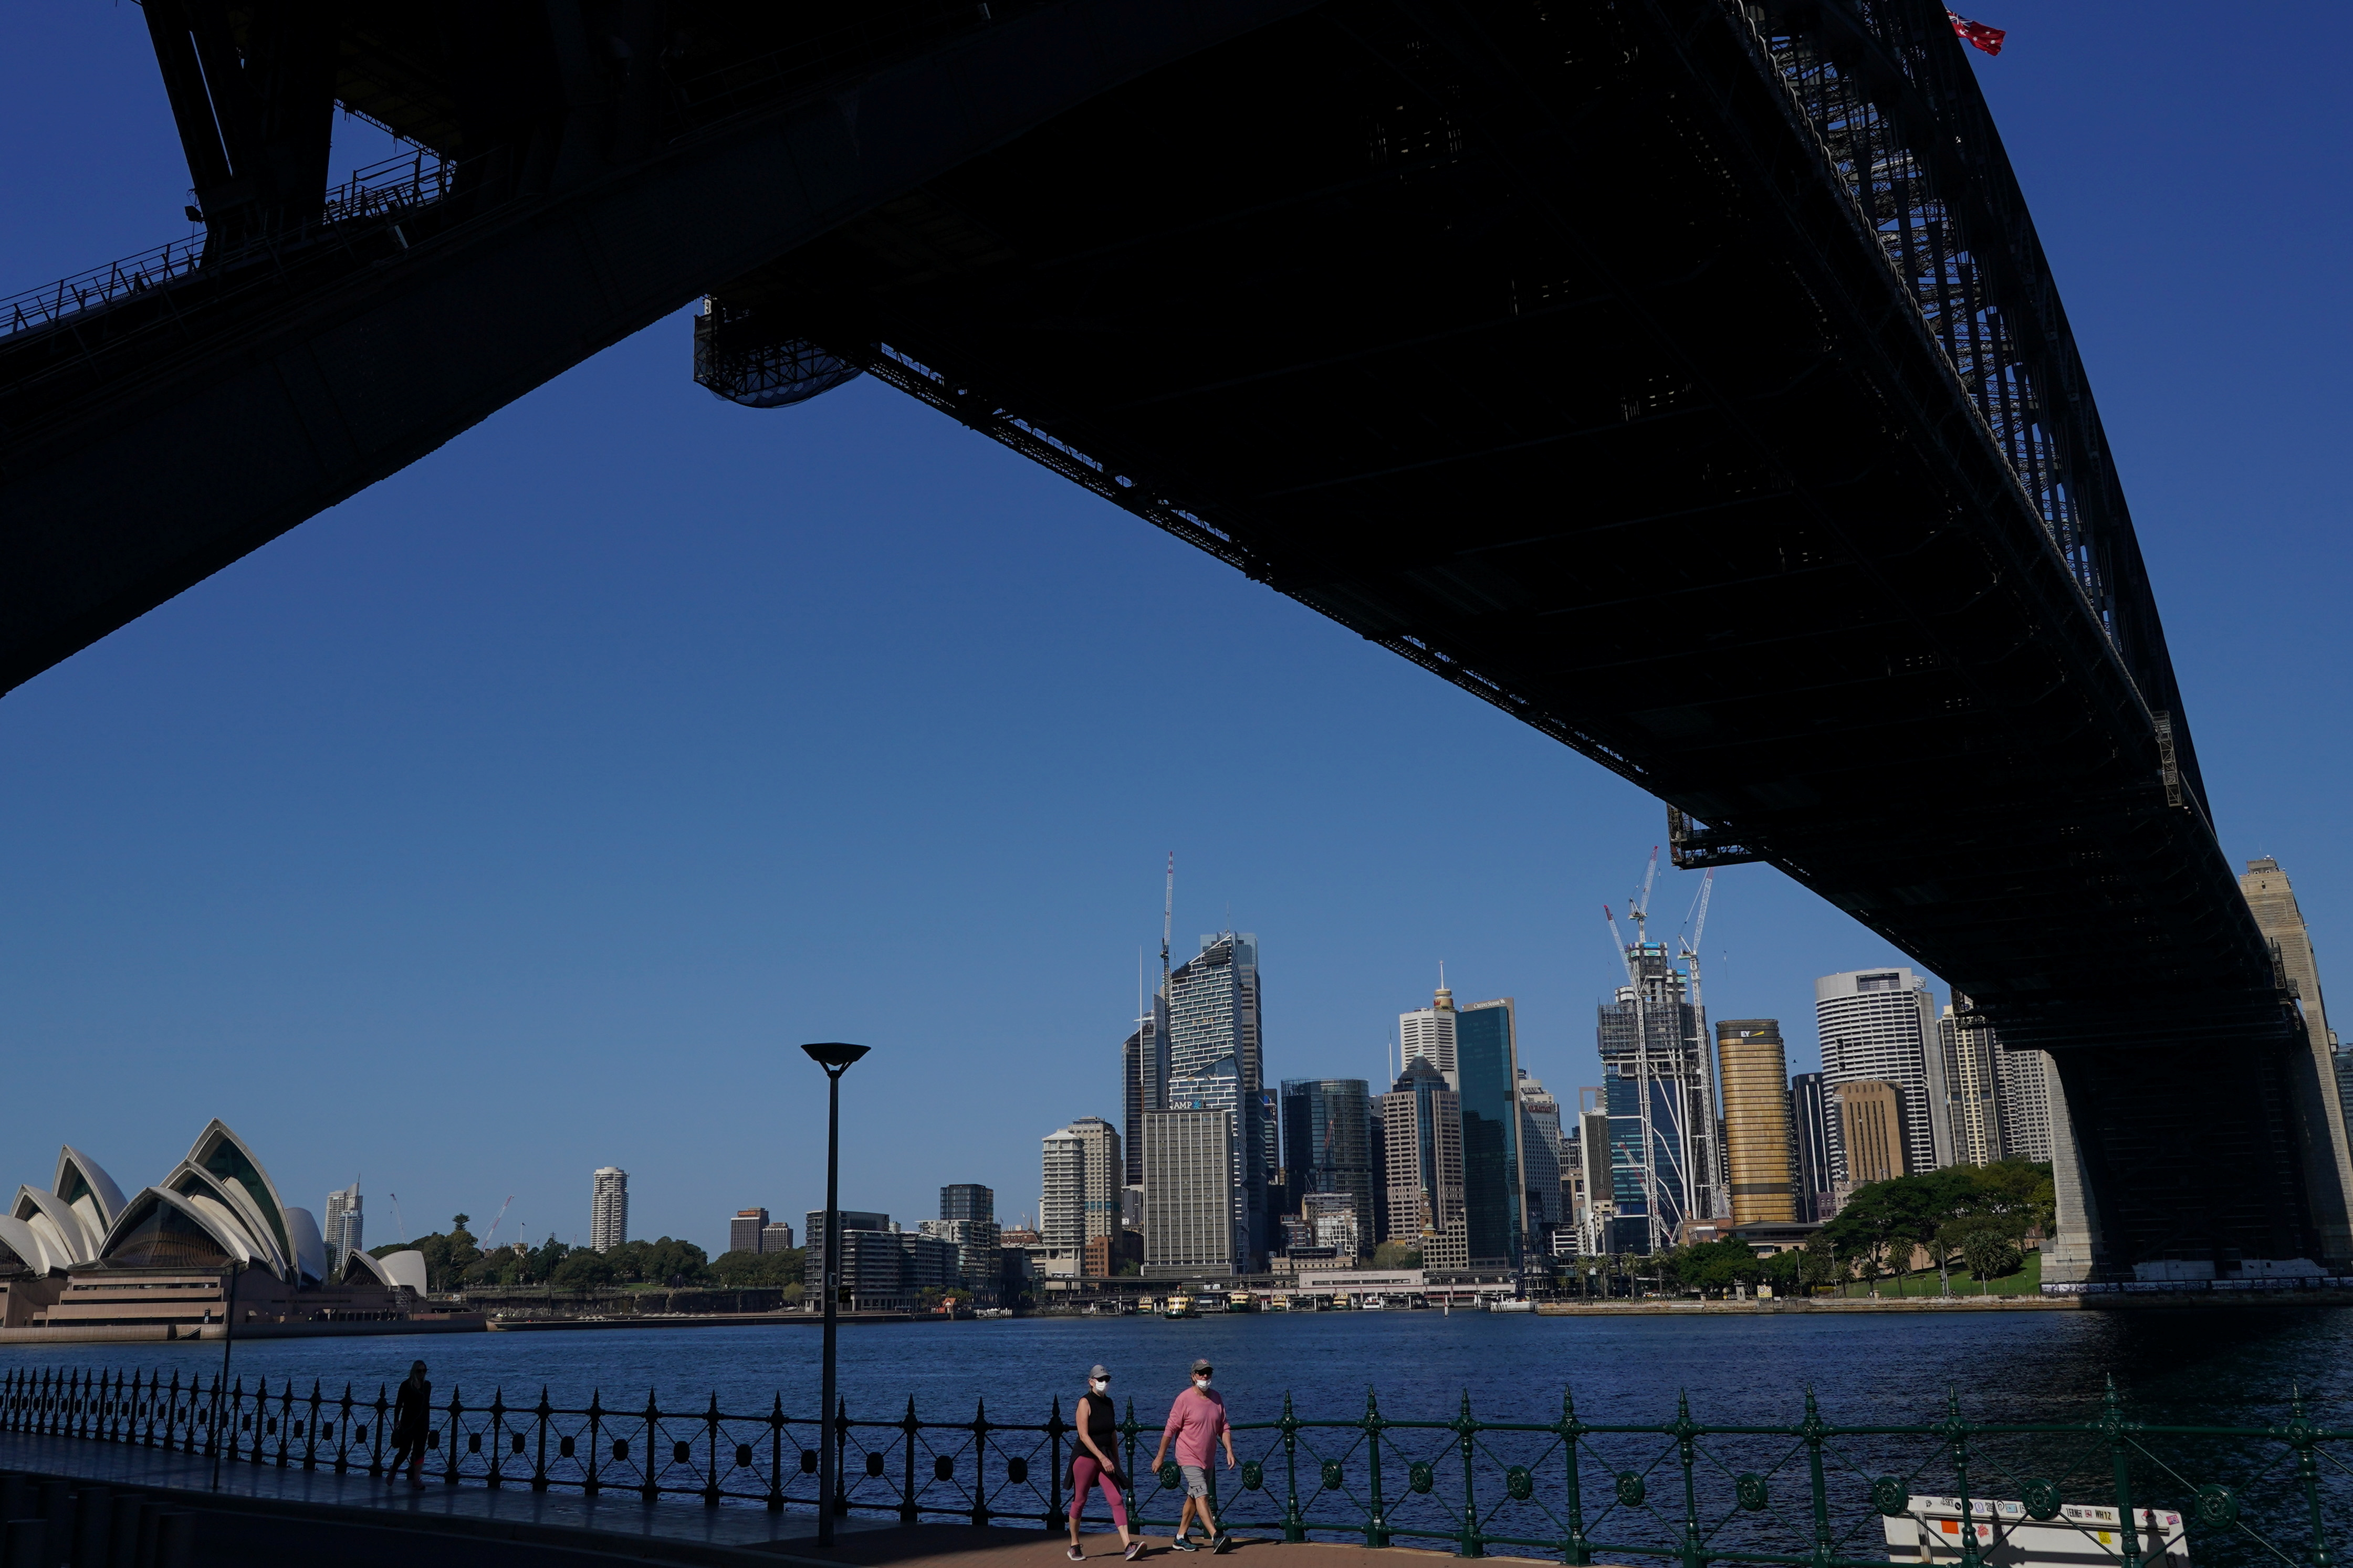 People in protective face masks walk under the Sydney Harbour Bridge during a lockdown to curb the spread of a coronavirus disease (COVID-19) outbreak in Sydney, Australia, September 3, 2021. REUTERS/Loren Elliott